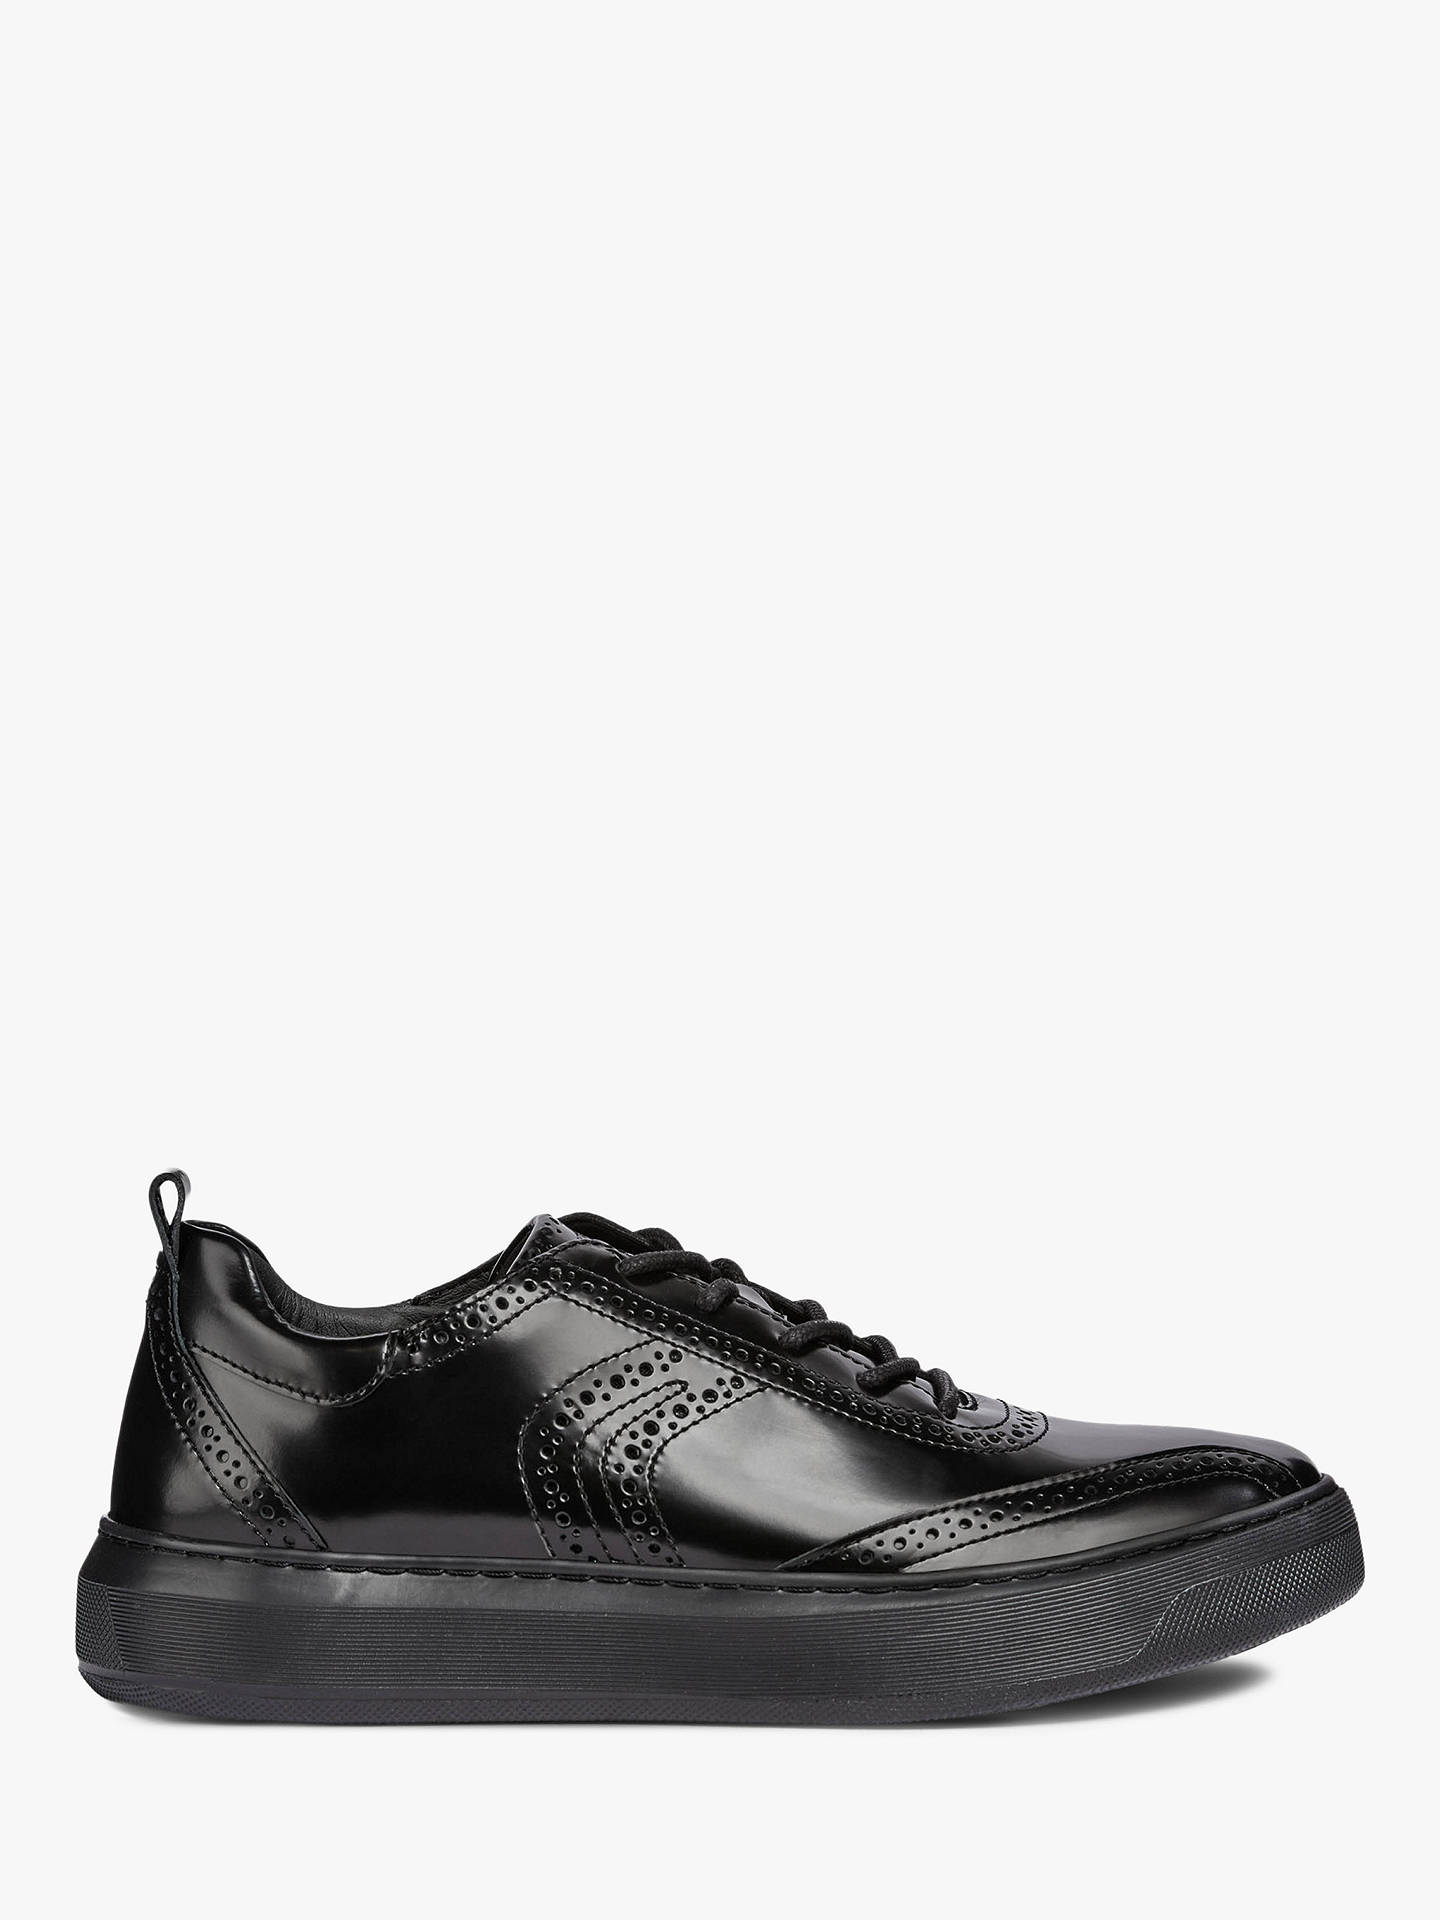 652ad1789f0 Buy Geox Deiven Breathable Trainers, Black, 6 Online at johnlewis.com ...